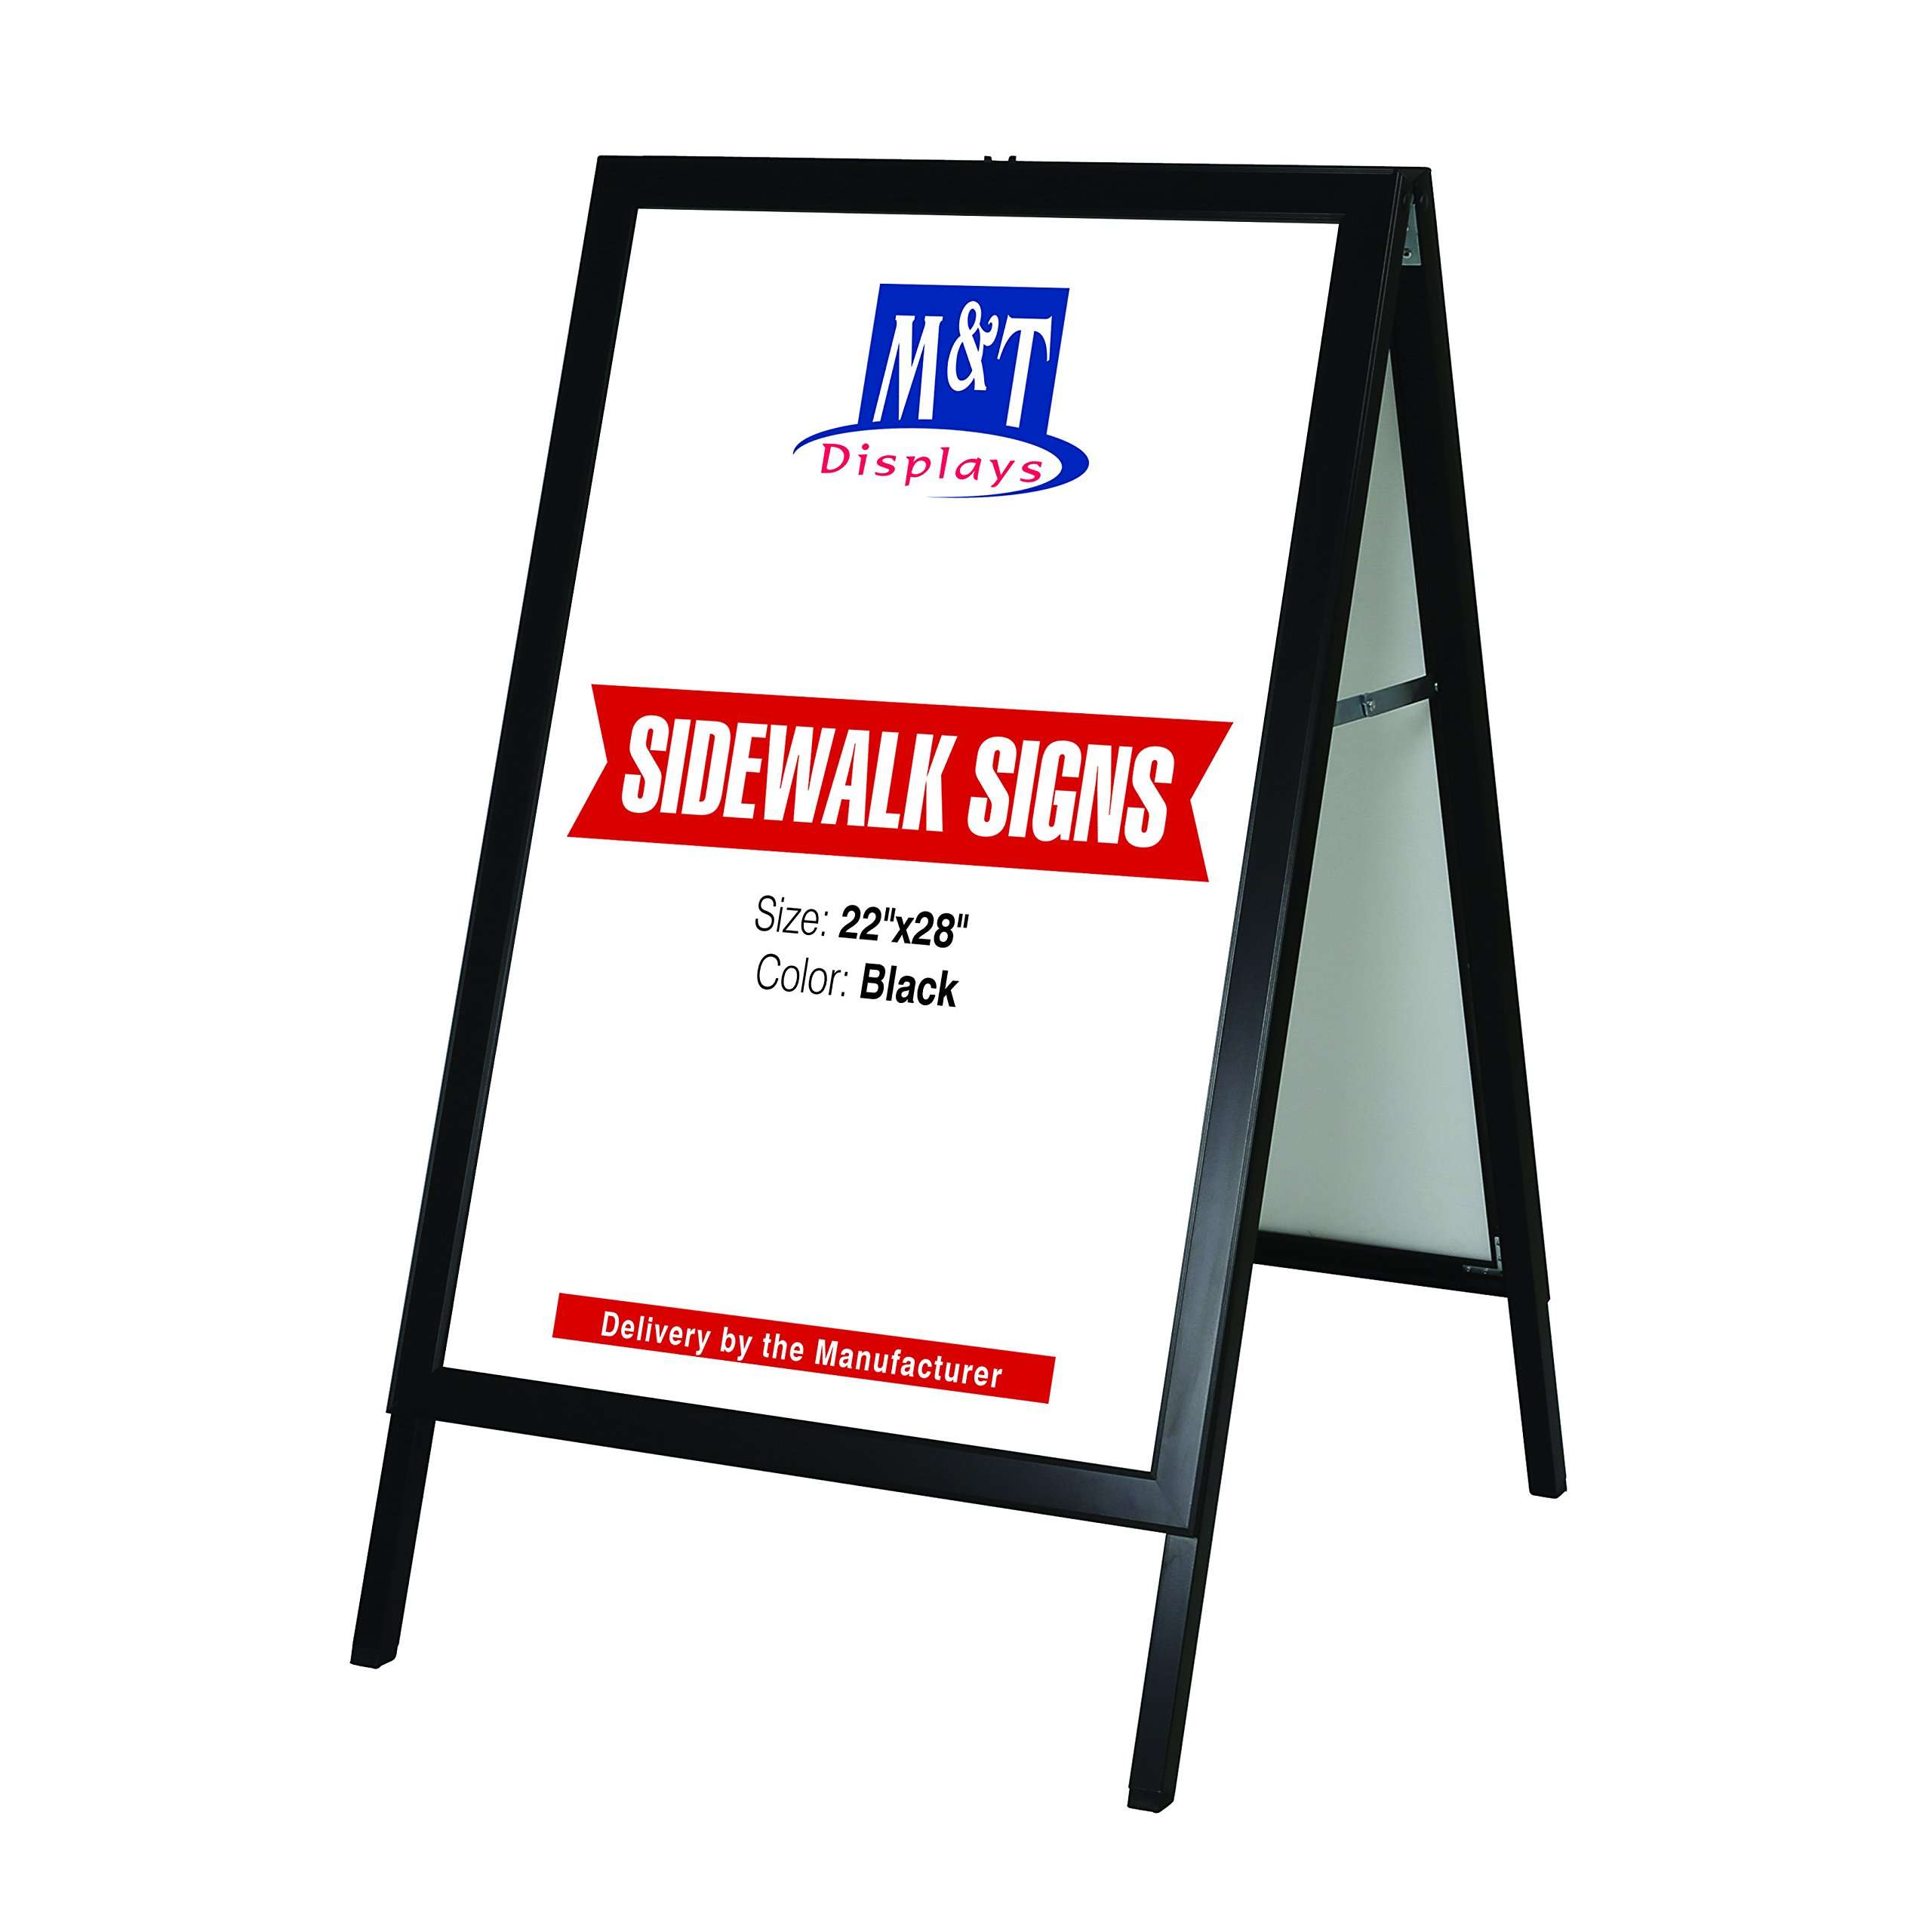 Free Standing Sidewalk Business Restaurant Advertising Display Slide-in A Frame, 22x28 Poster Size, Black by M&T Displays